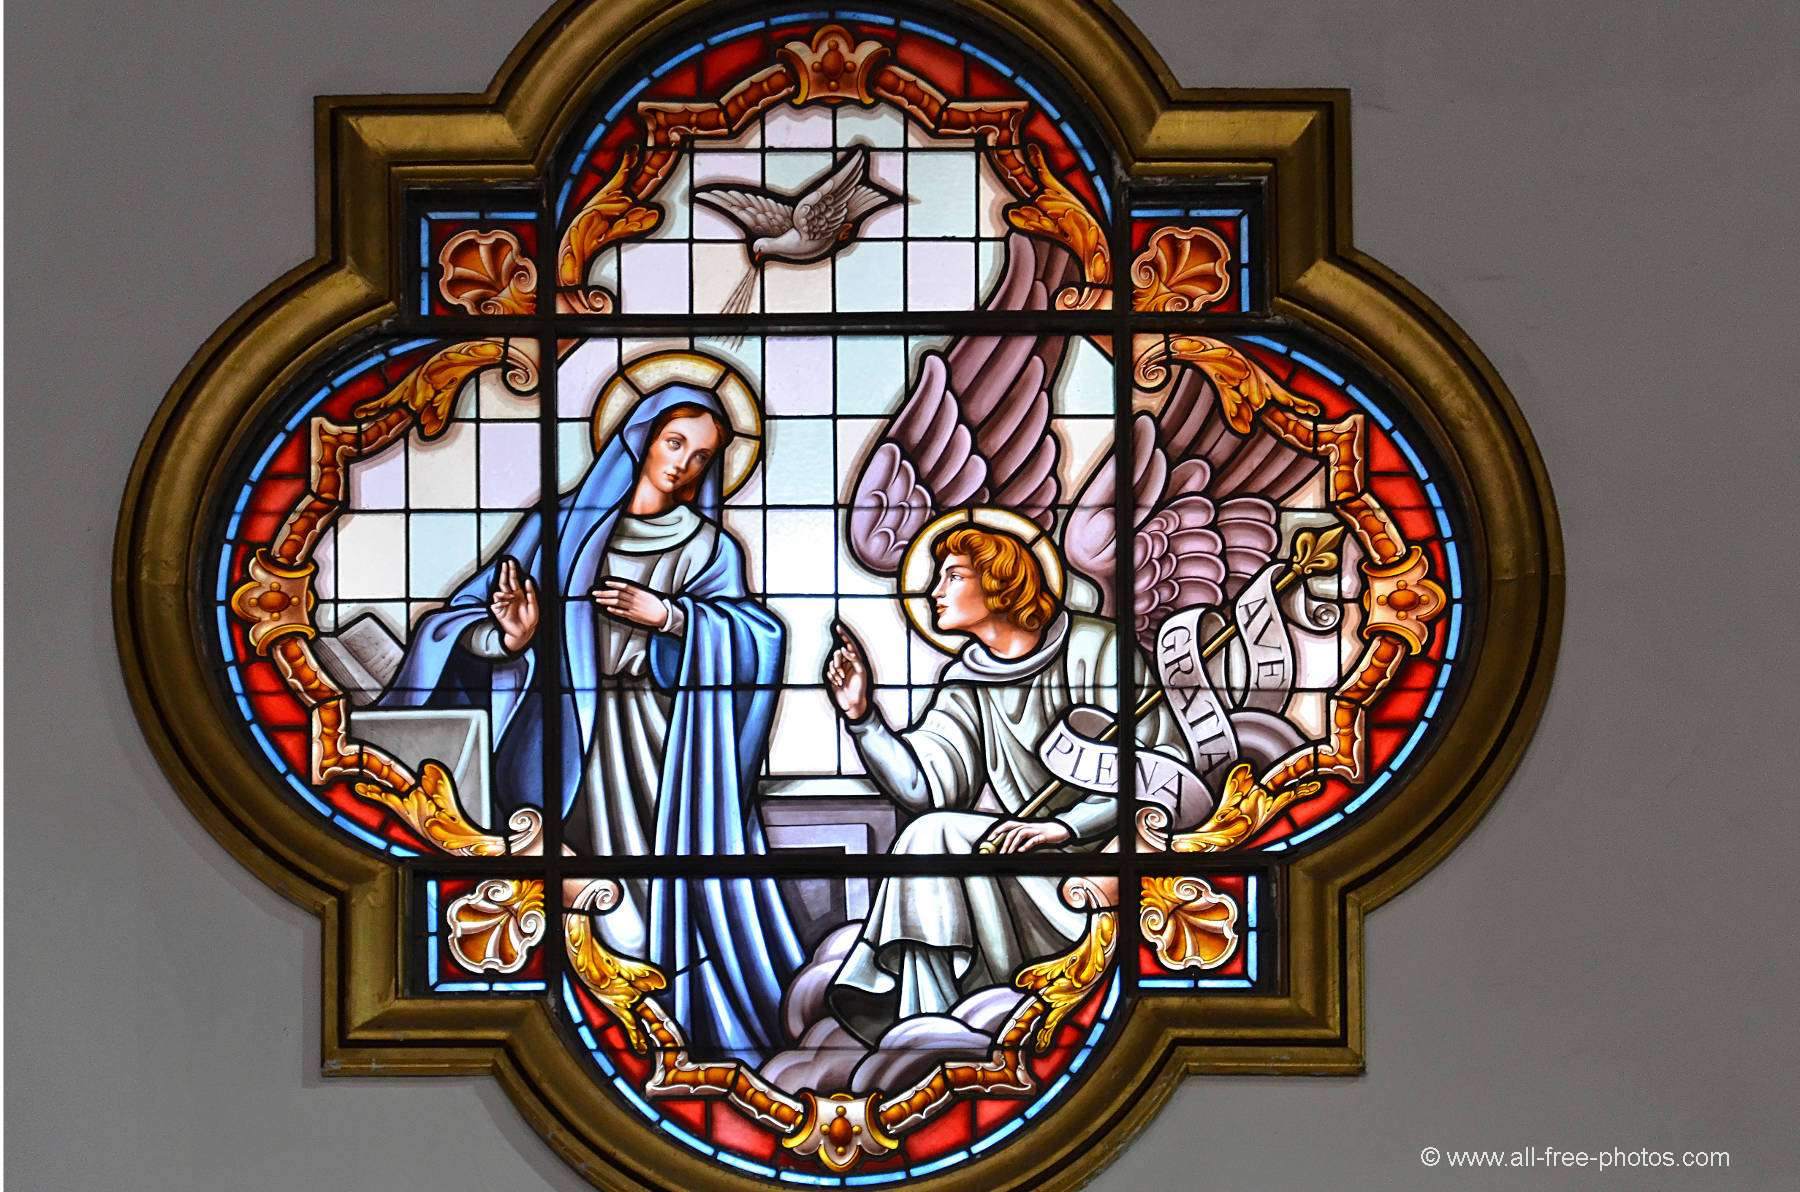 Stained glass - Basilica of the Virgin of Candelaria - Tenerife - Canary Islands